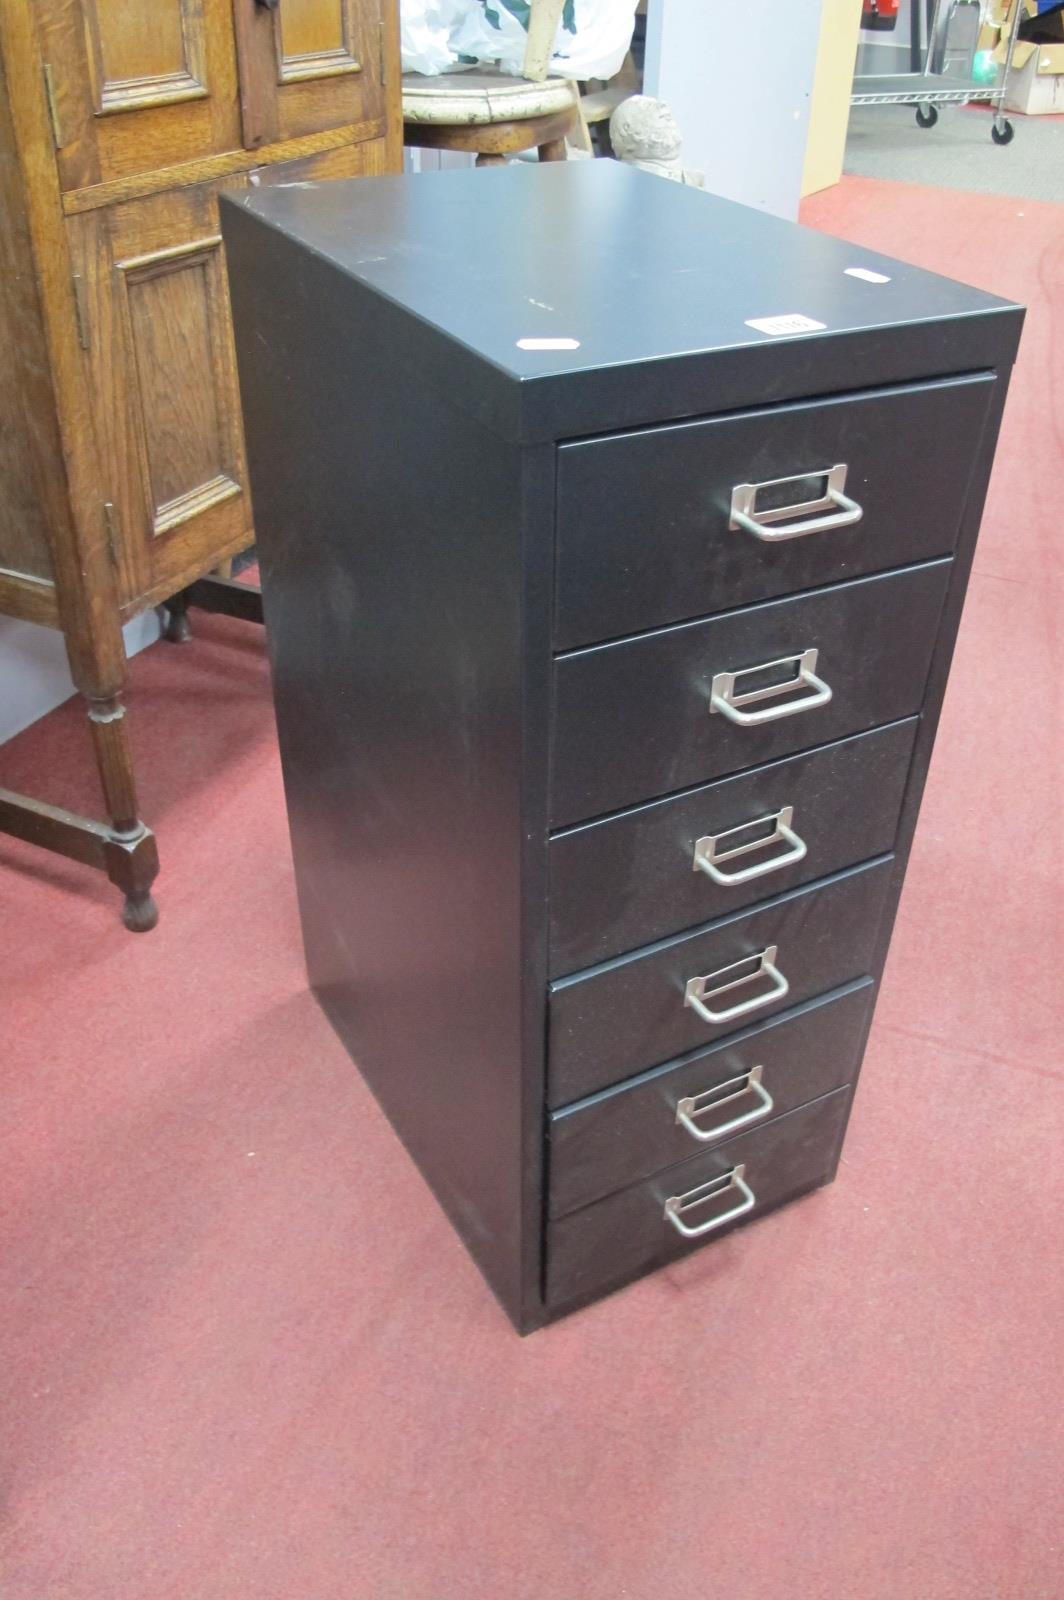 A Metal Office Filing Chest of Six Drawers, 67cm high x 28 wide.